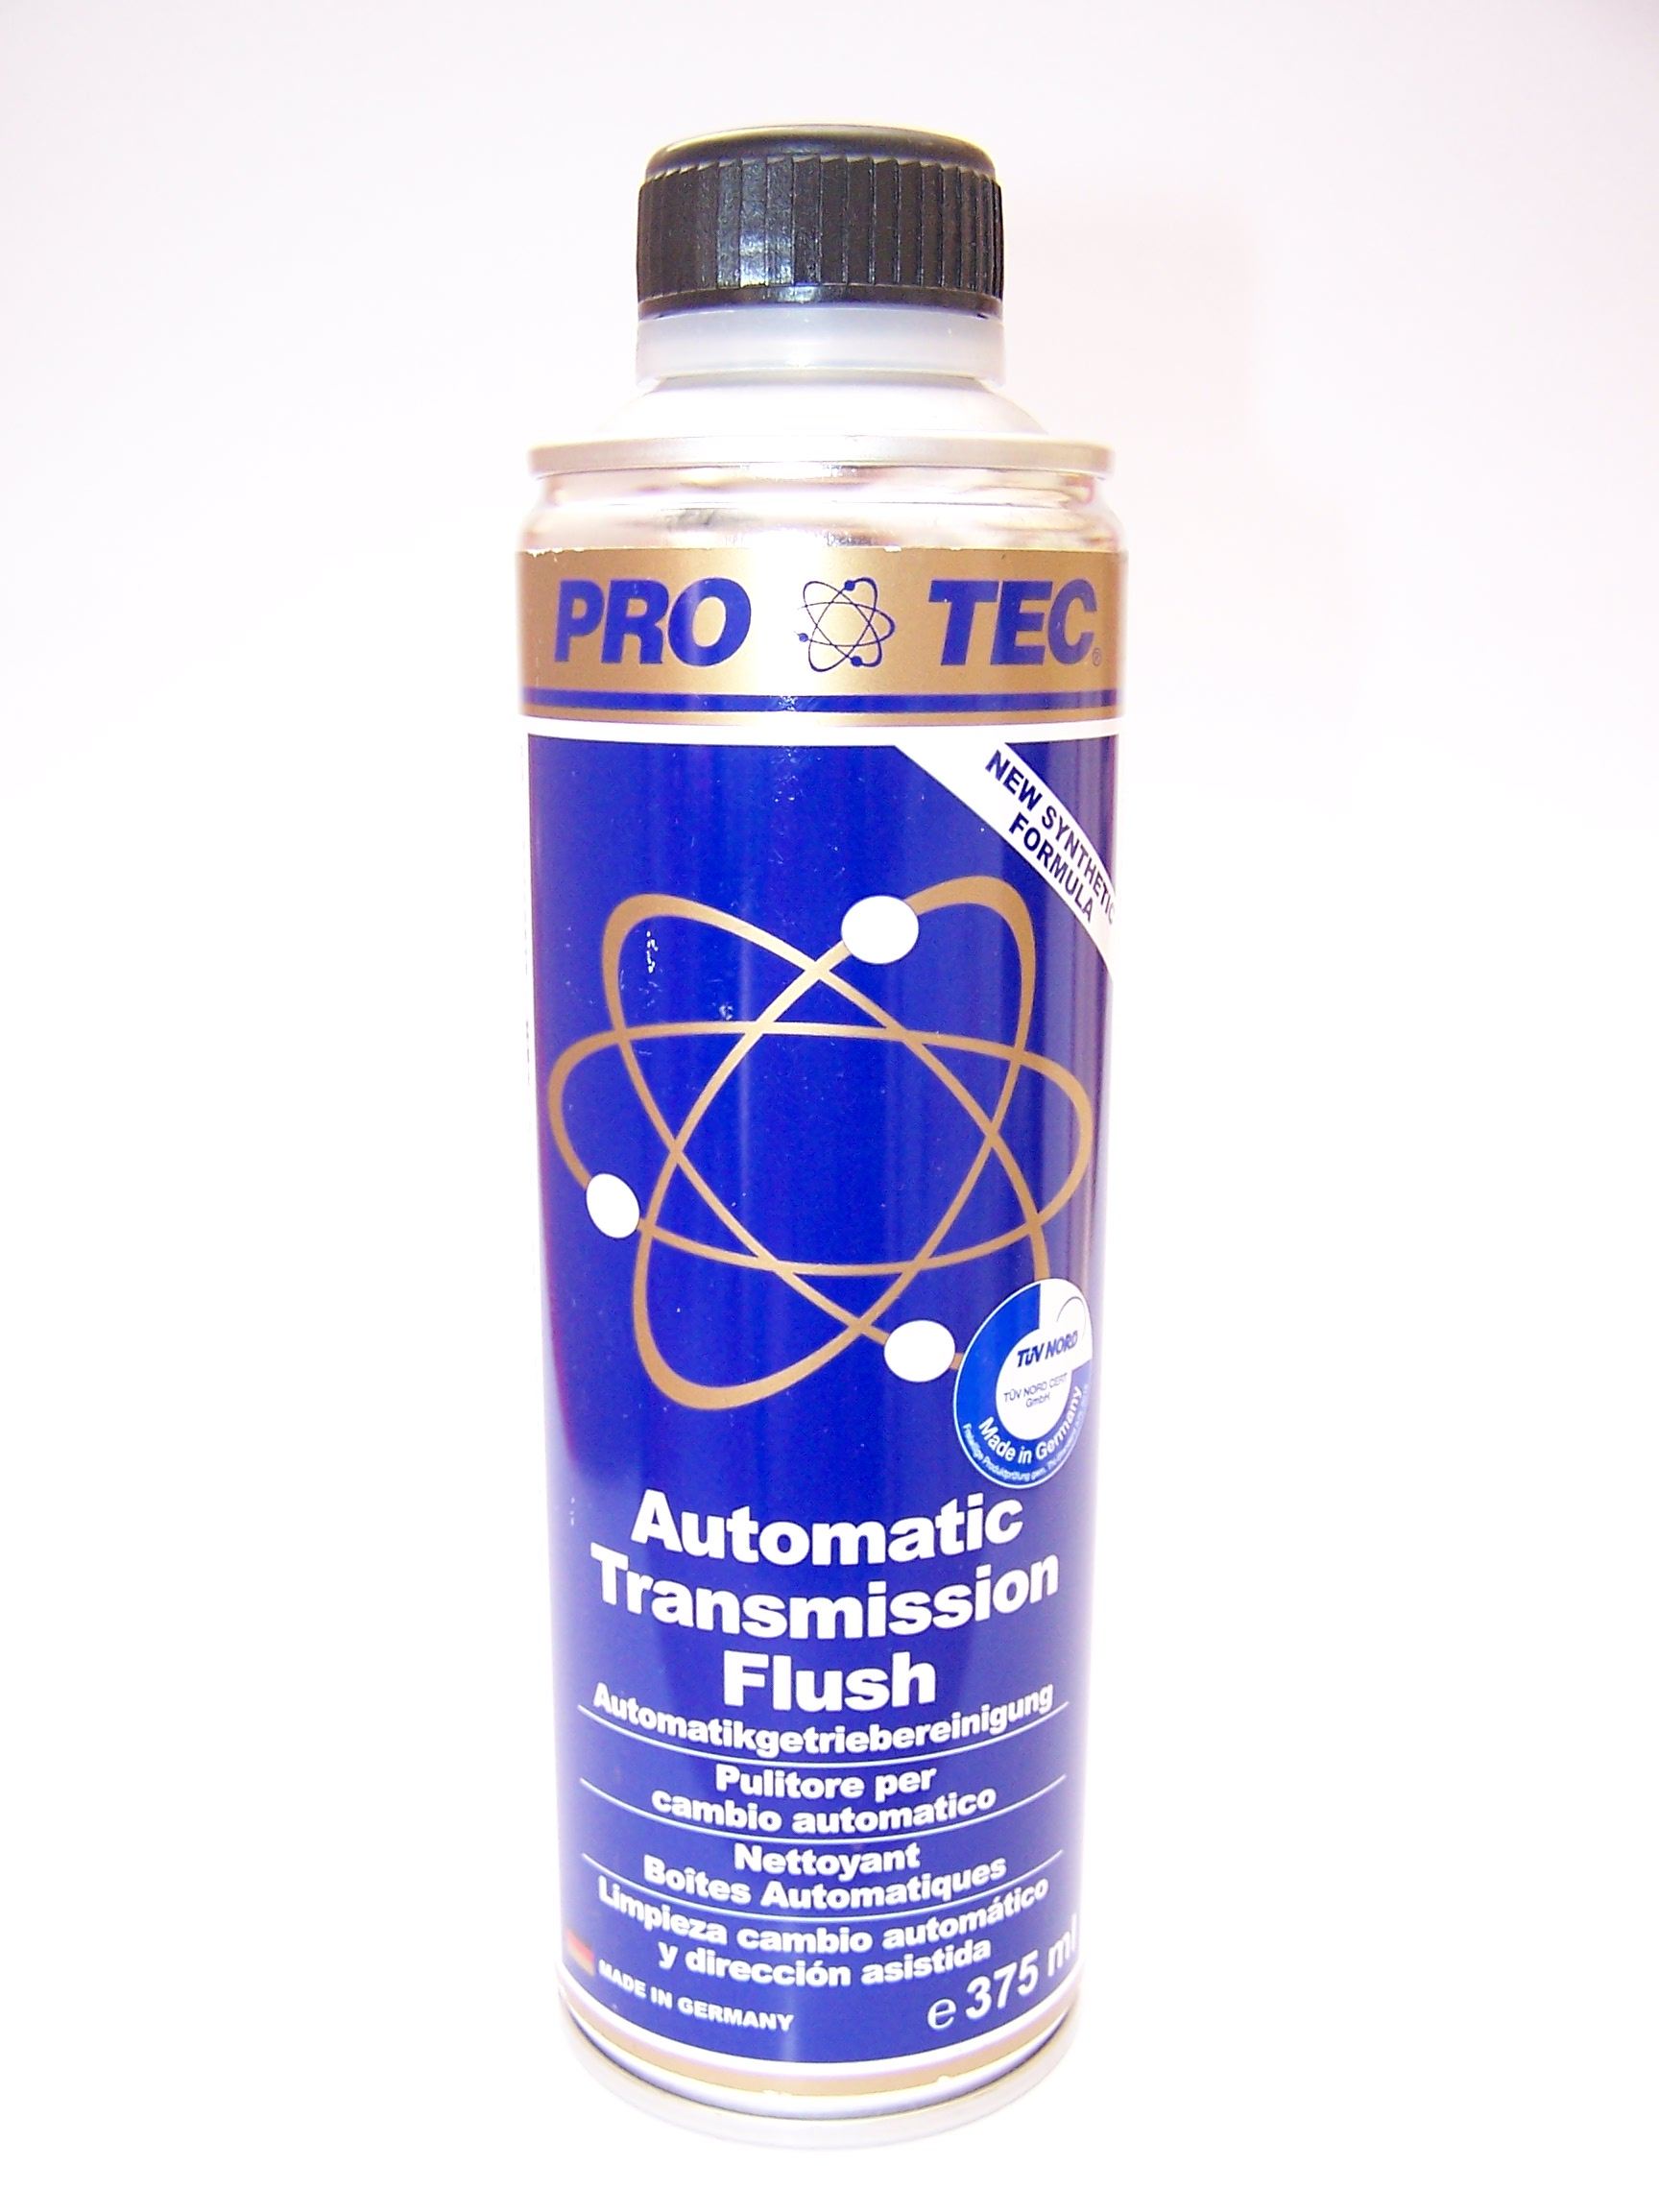 PRO-TEC Automatic Transmission Flush